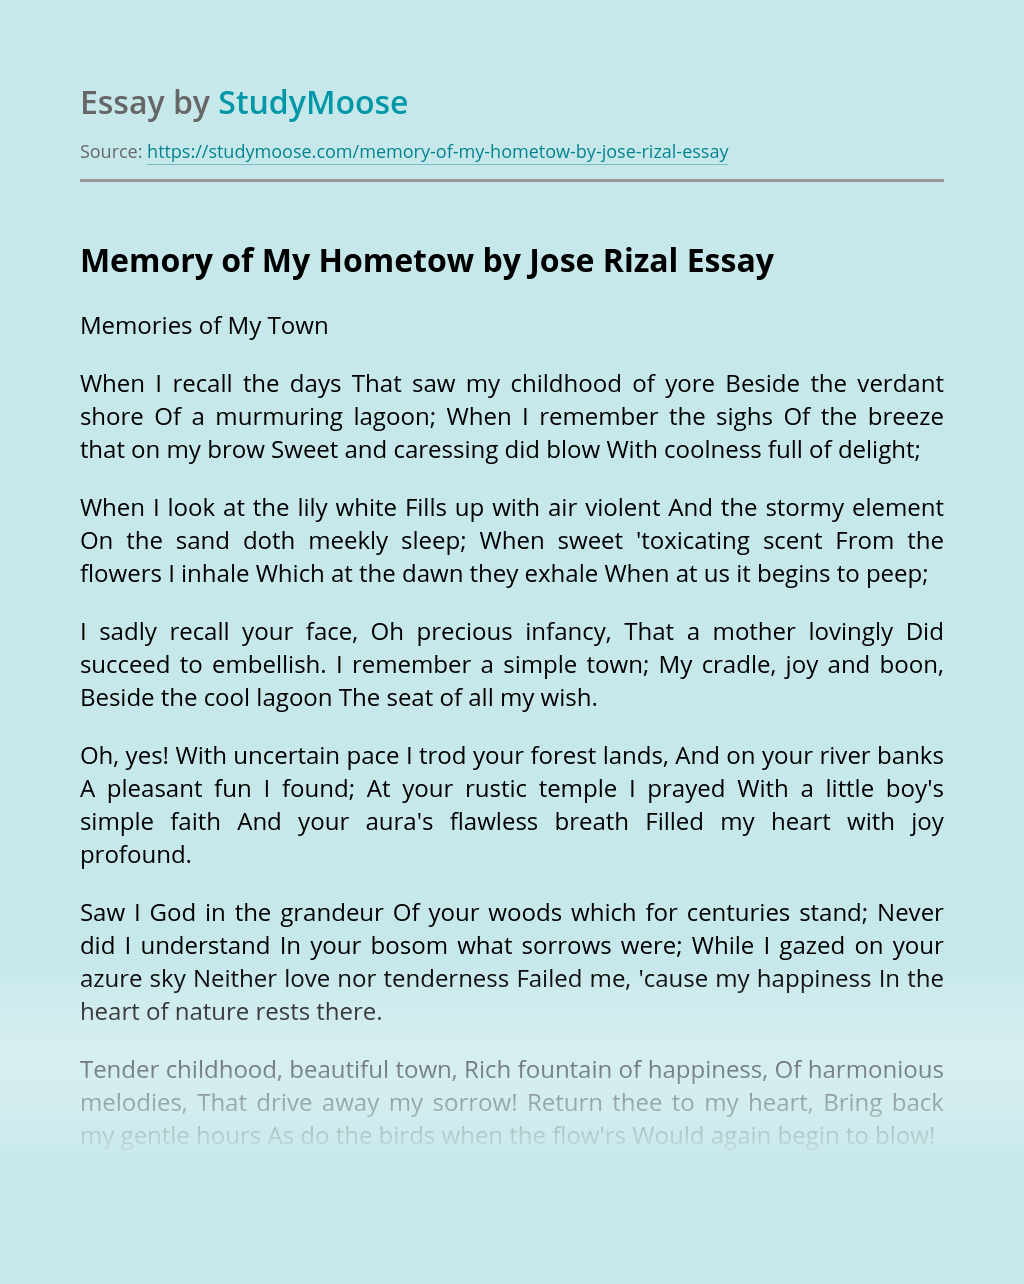 Memory of My Hometow by Jose Rizal